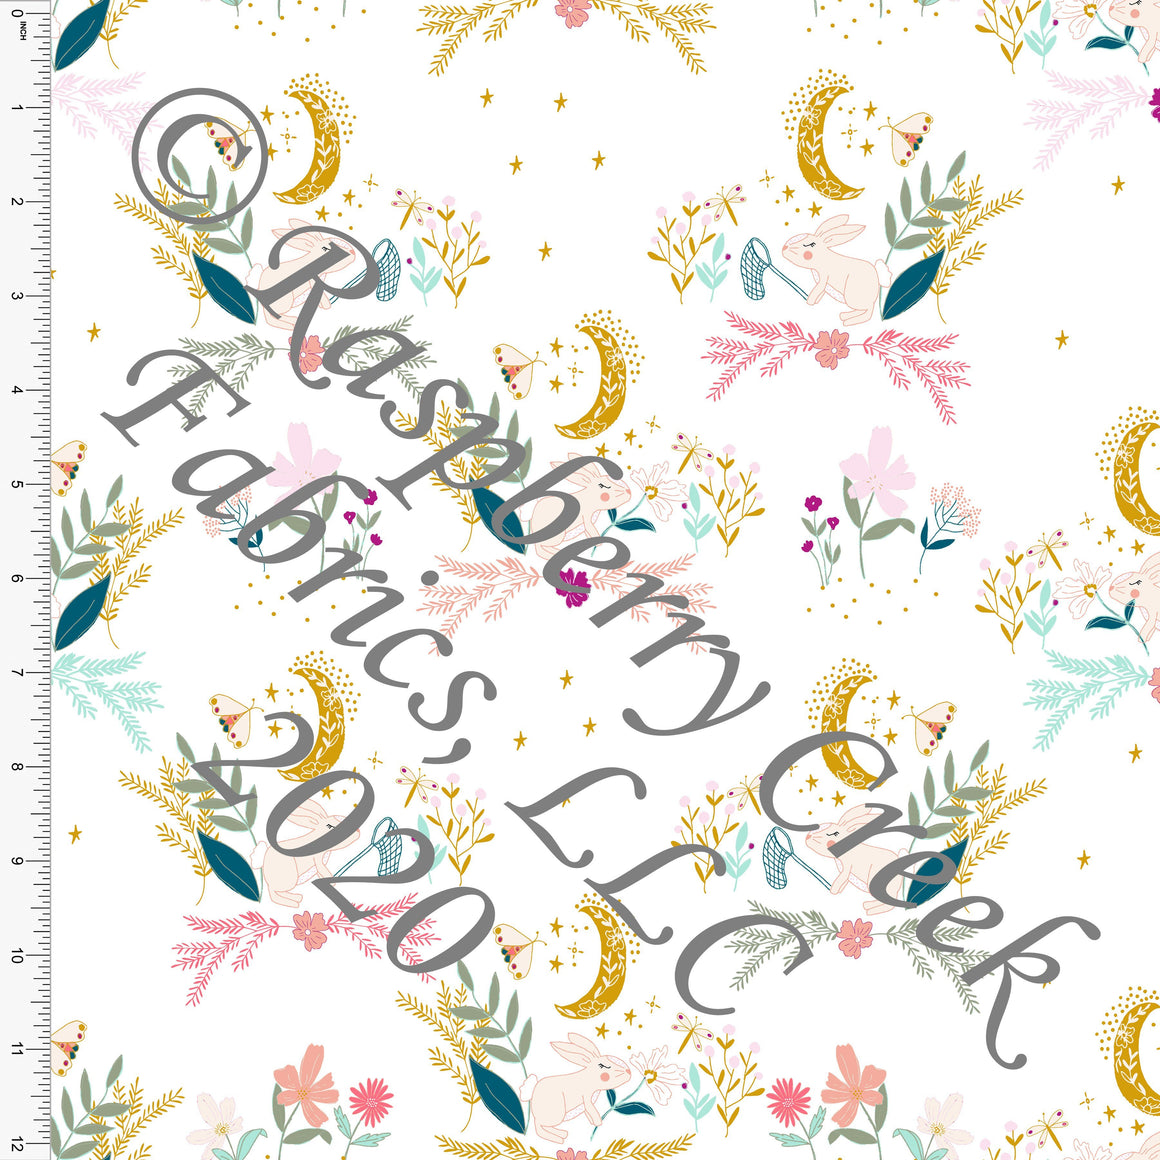 Mustard Teal Mint Coral and Sage Bunny Patch Print, By Kimberly Henrie for Club Fabrics - Raspberry Creek Fabrics